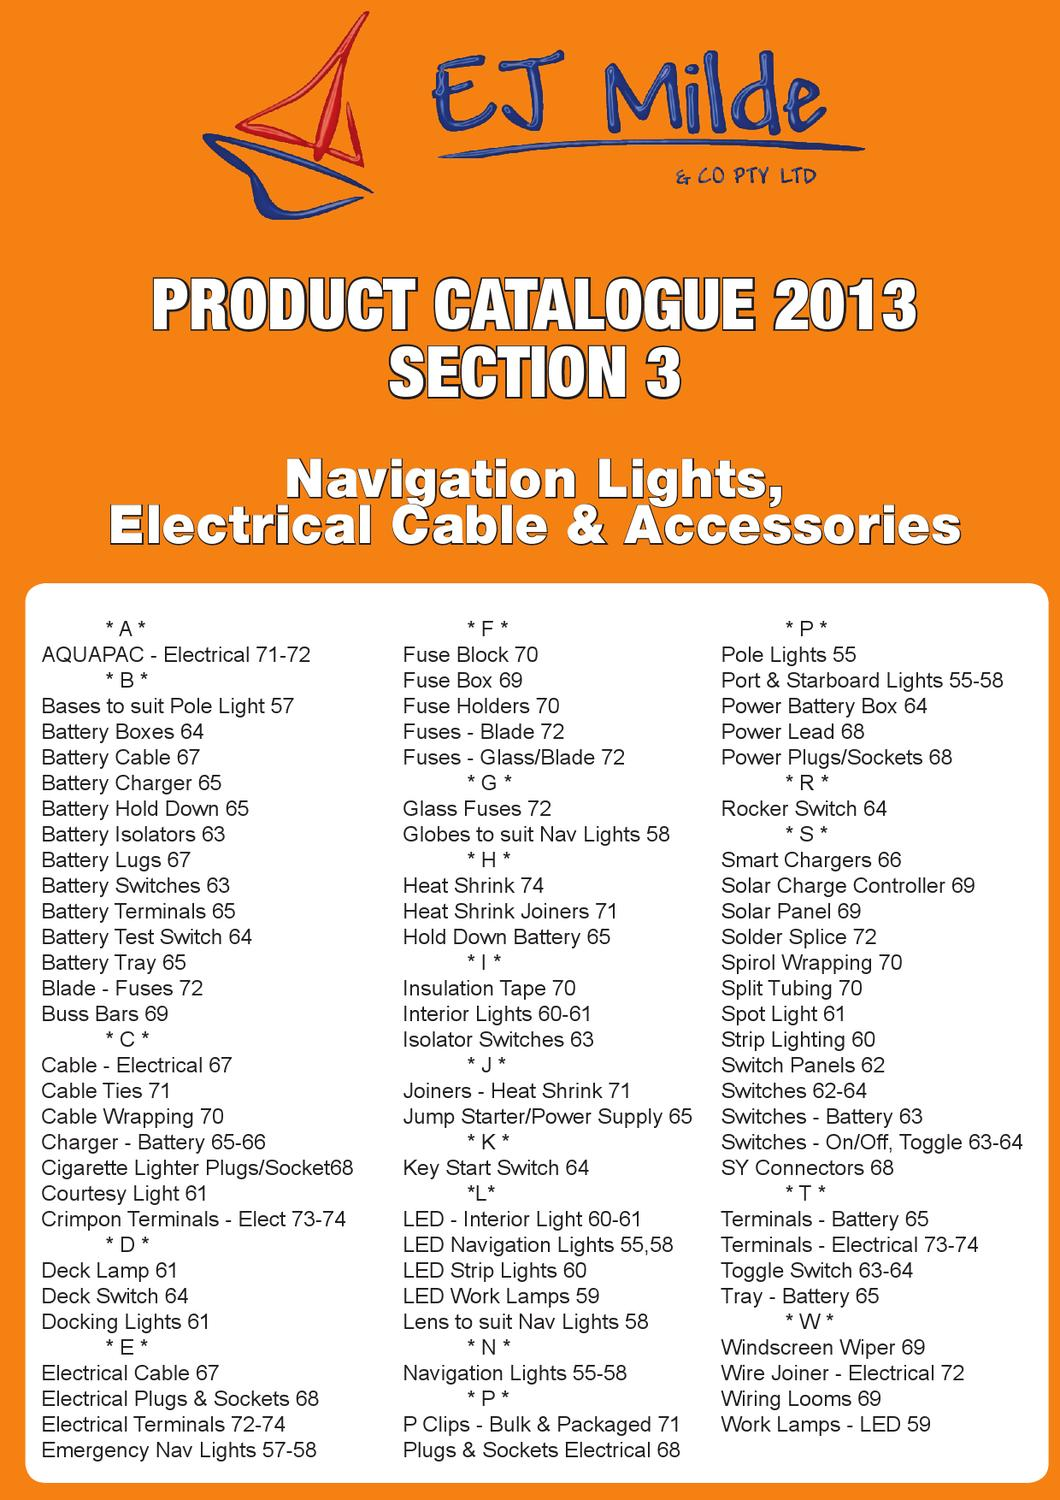 hight resolution of ej milde product catalogue 2013 section 3 by ej milde co pty ltd issuu